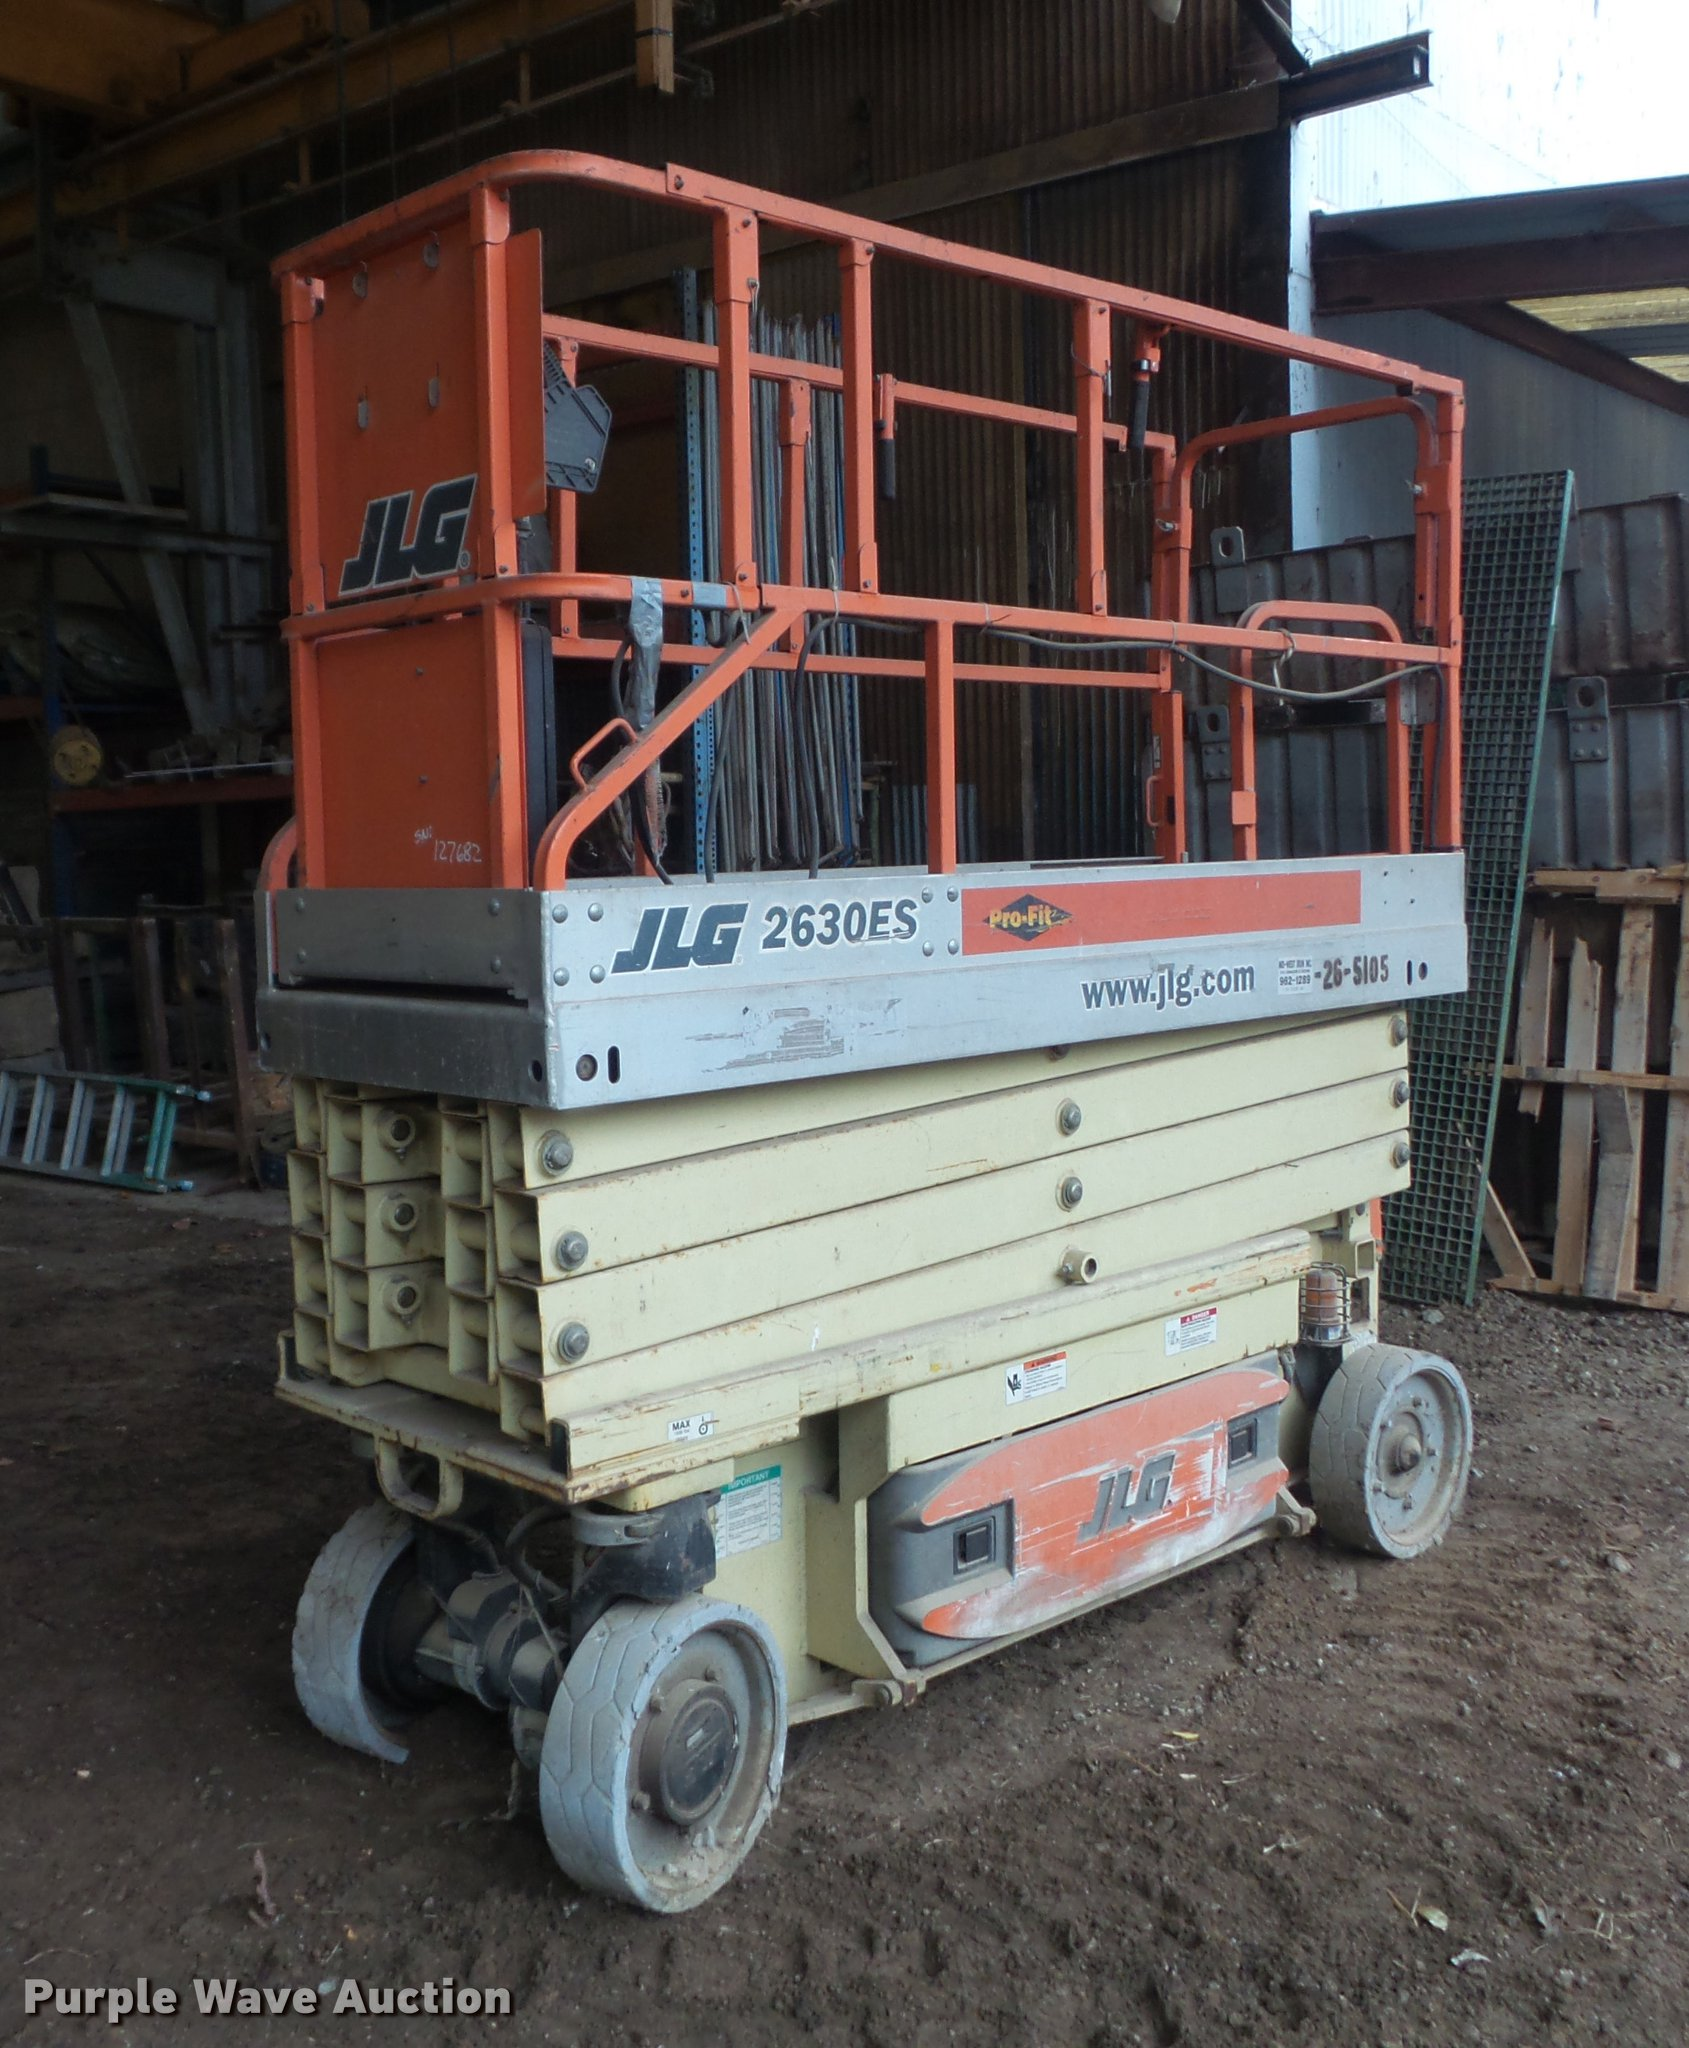 hight resolution of 2005 jlg 2630es scissor lift for sale in missouri